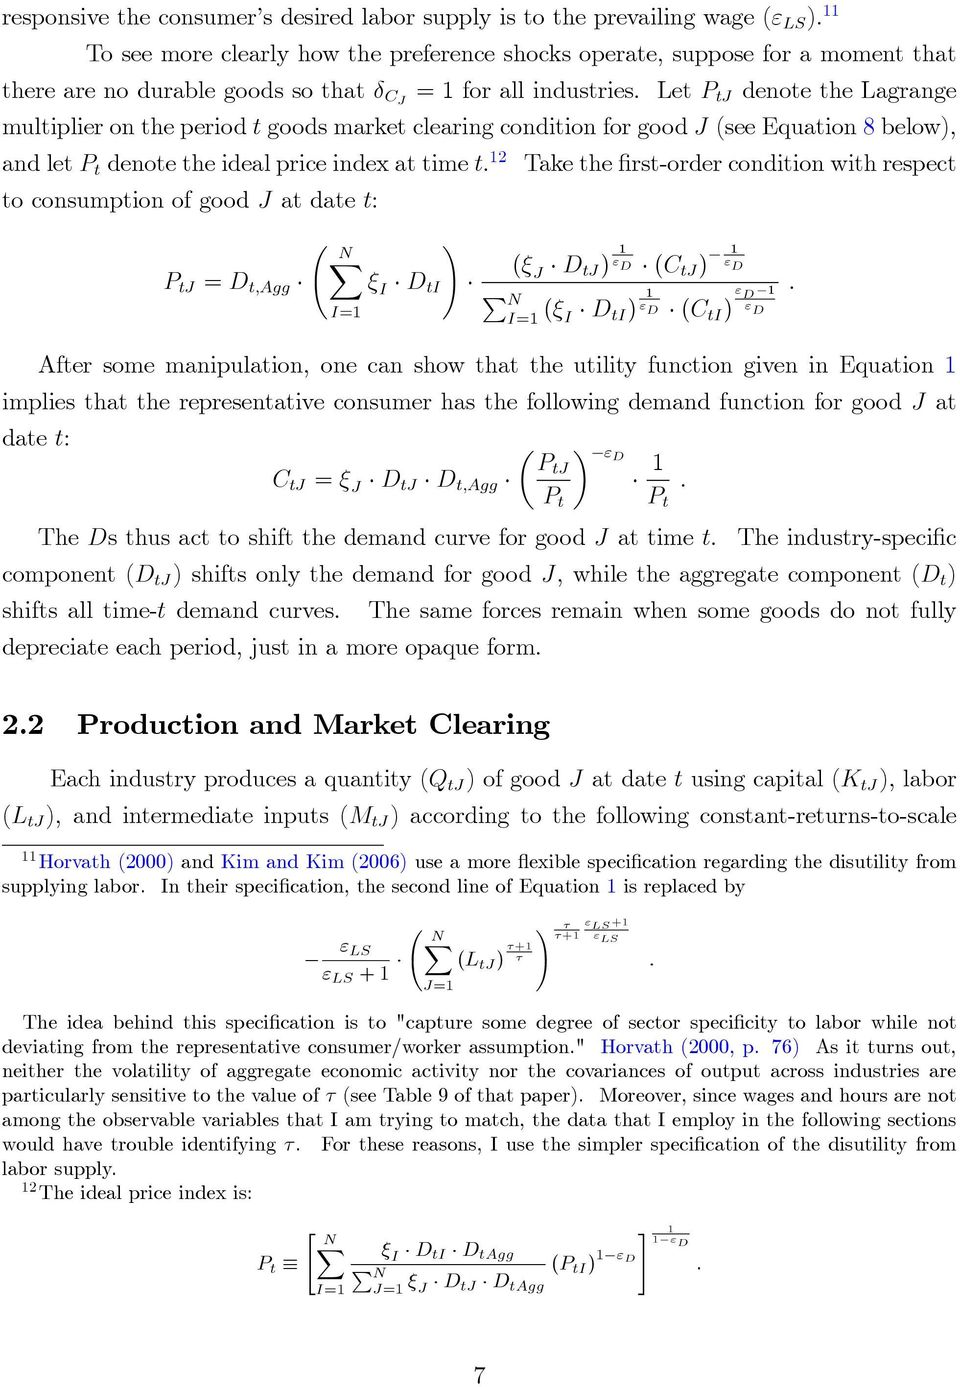 Let P tj denote the Lagrange multiplier on the period t goods market clearing condition for good J see Equation 8 below), and let P t denote the ideal price index at time t.